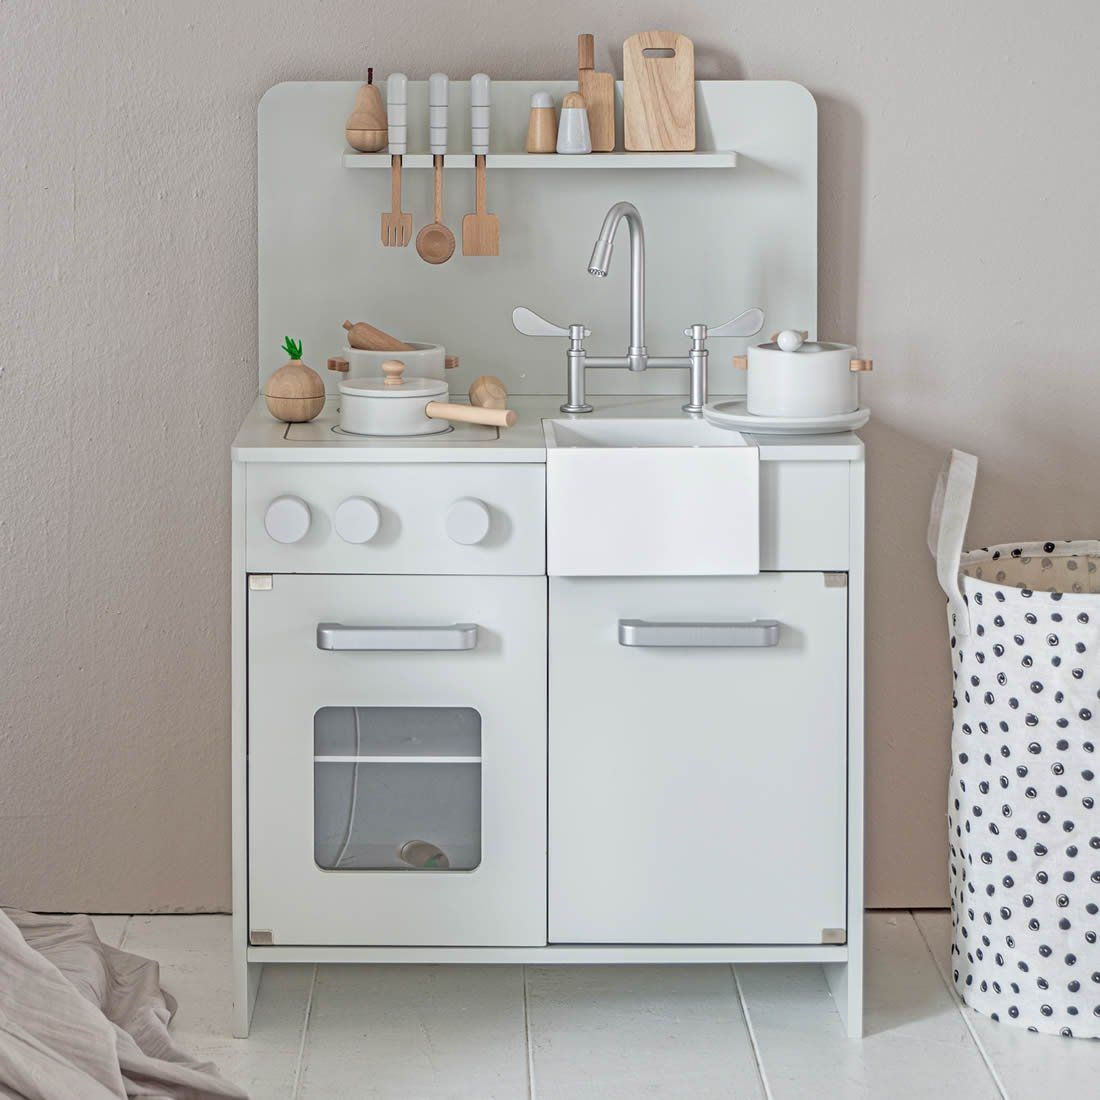 Dolls Küche Rezepte Wooden Toy Kitchen In Mint Grey | Petite Amélie In 2020 ...